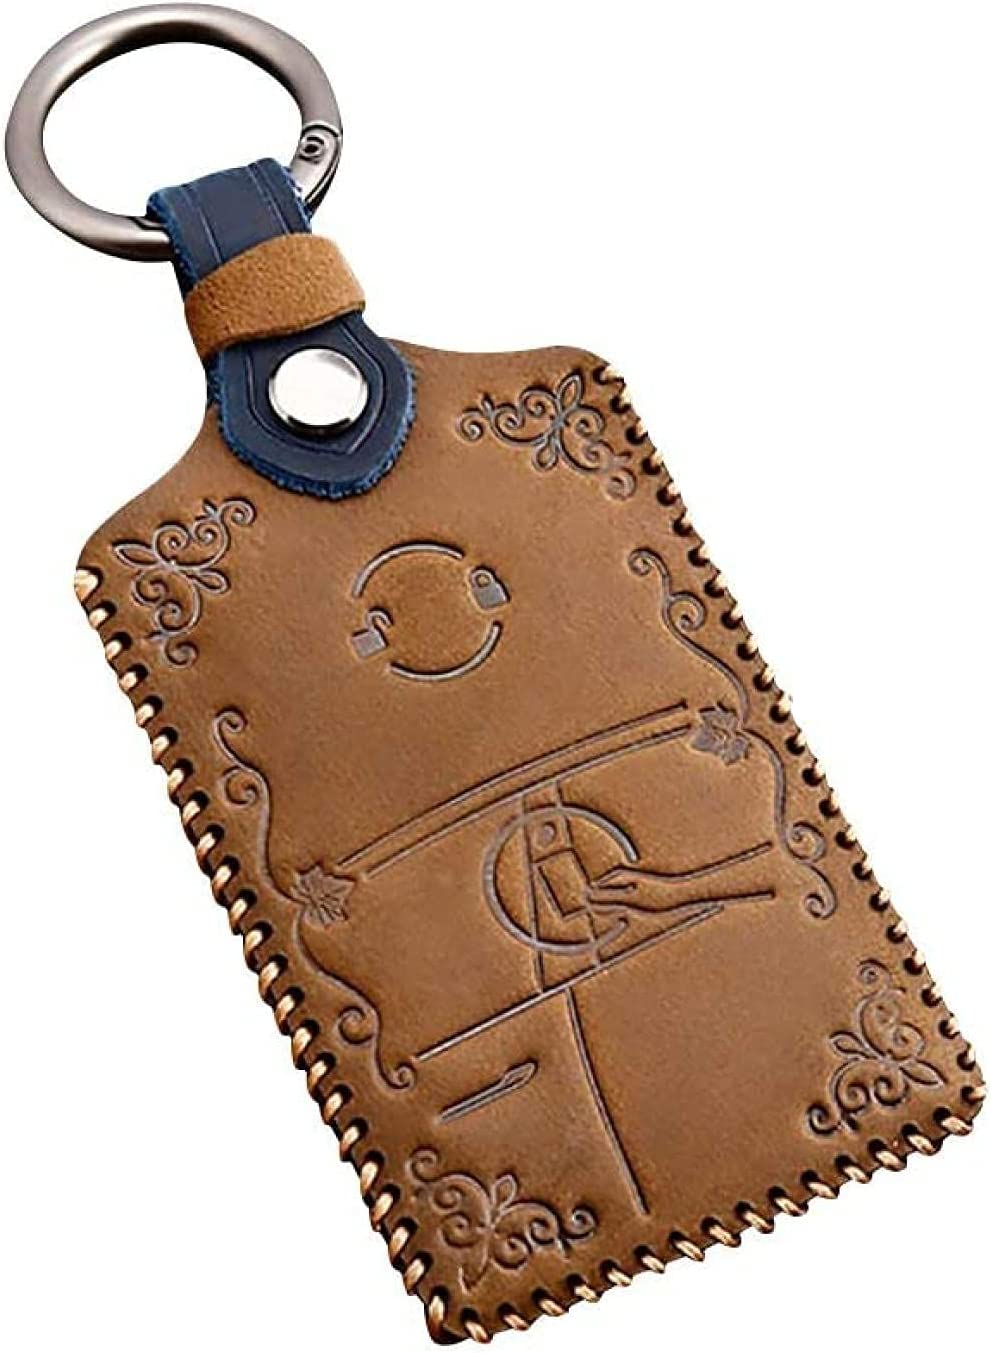 Detroit Mall Key Fob Cover Case Premium Leather Holder Tesla Inventory cleanup selling sale Bag Box fit for